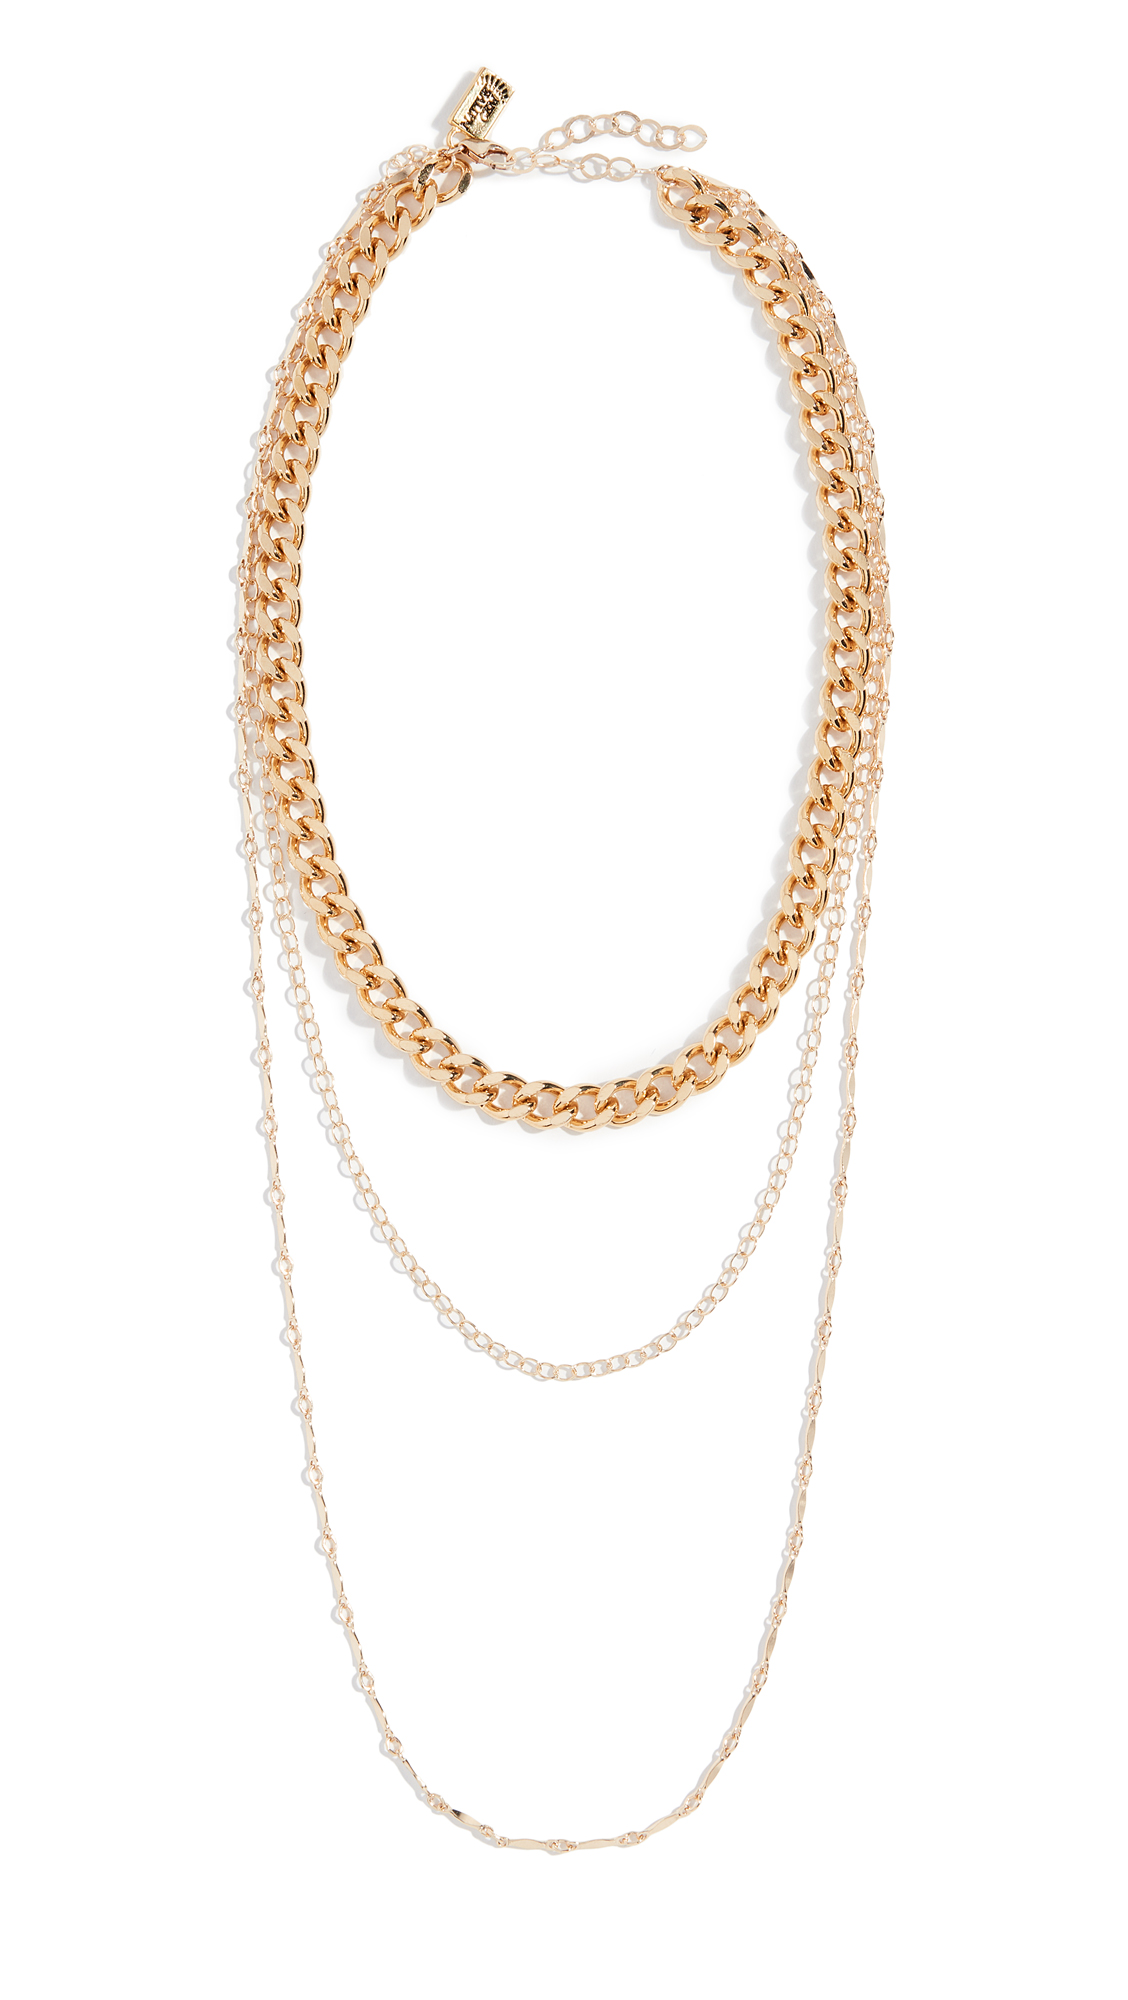 NATIVE GEM LUXE LAYERED NECKLACE